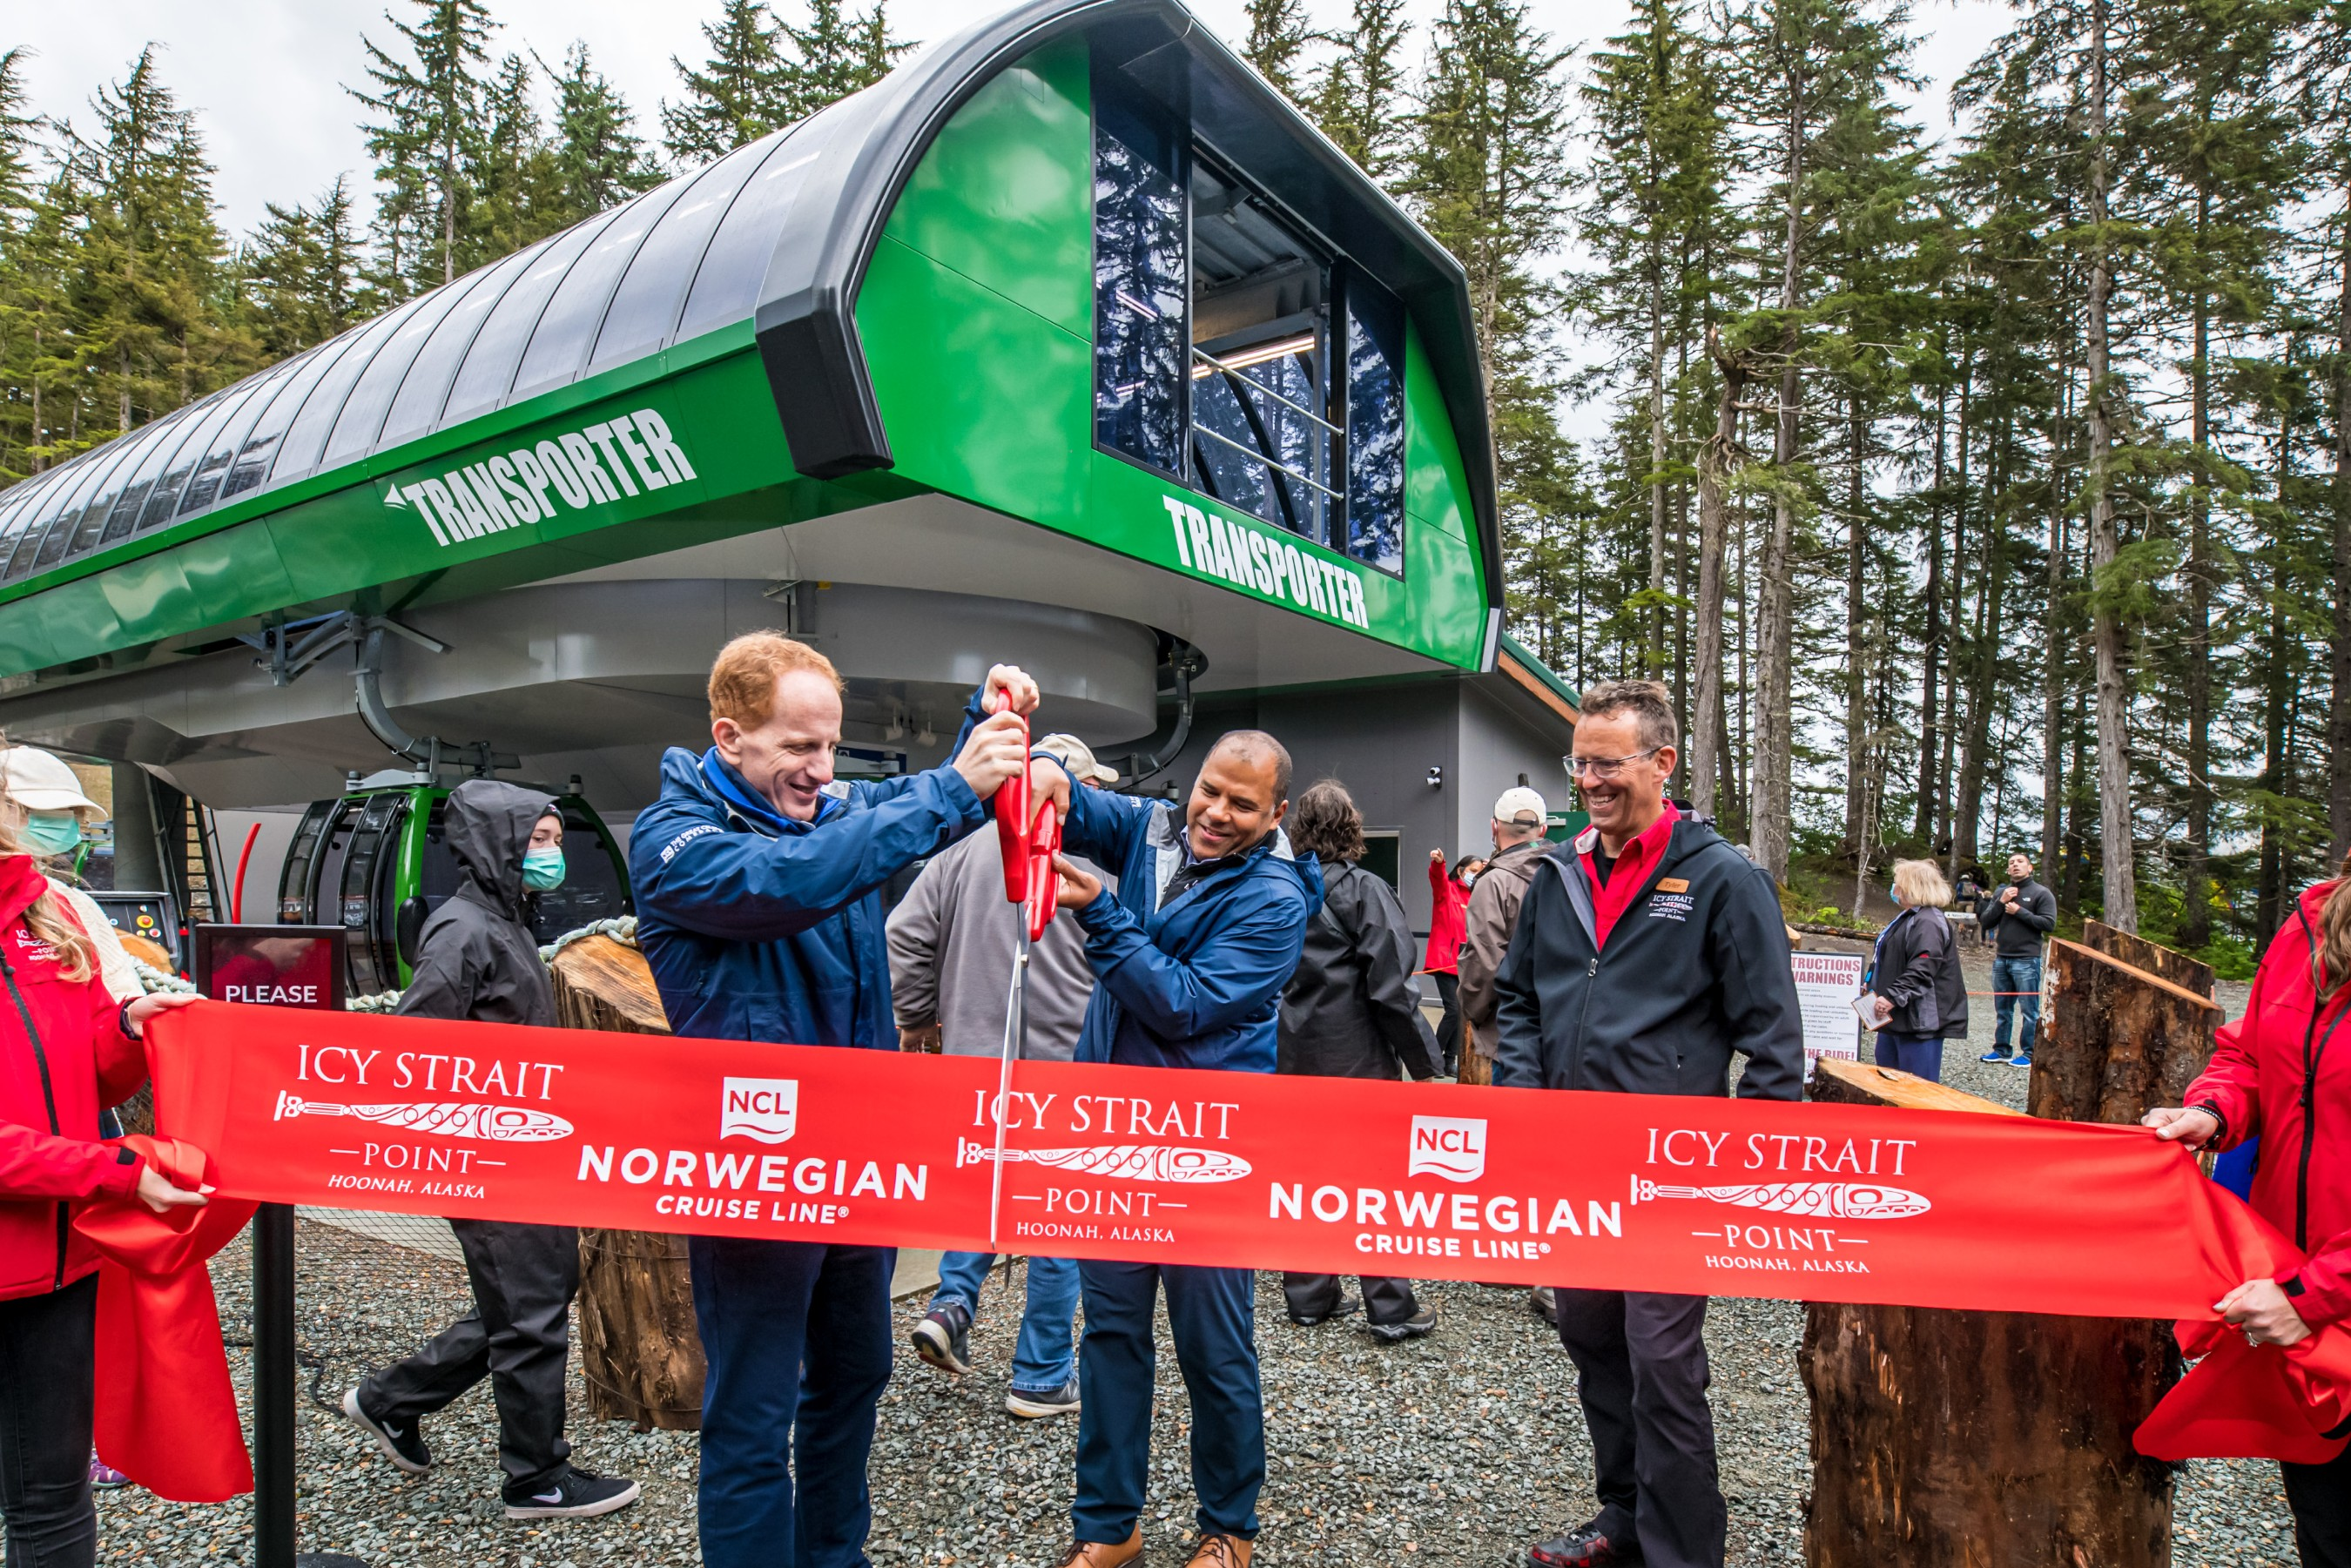 NCL President and CEO Harry Sommer and Huna Totem Corporation CEO Russell Dick ceremoniously cut the ribbon for the opening of the new Transporter Gondola system at Icy Strait Point, Alaska on Aug. 10, 2021 during the Cruise Line's first voyage to Alaska after its 500-day pause in operations. Photos by Alive Coverage.